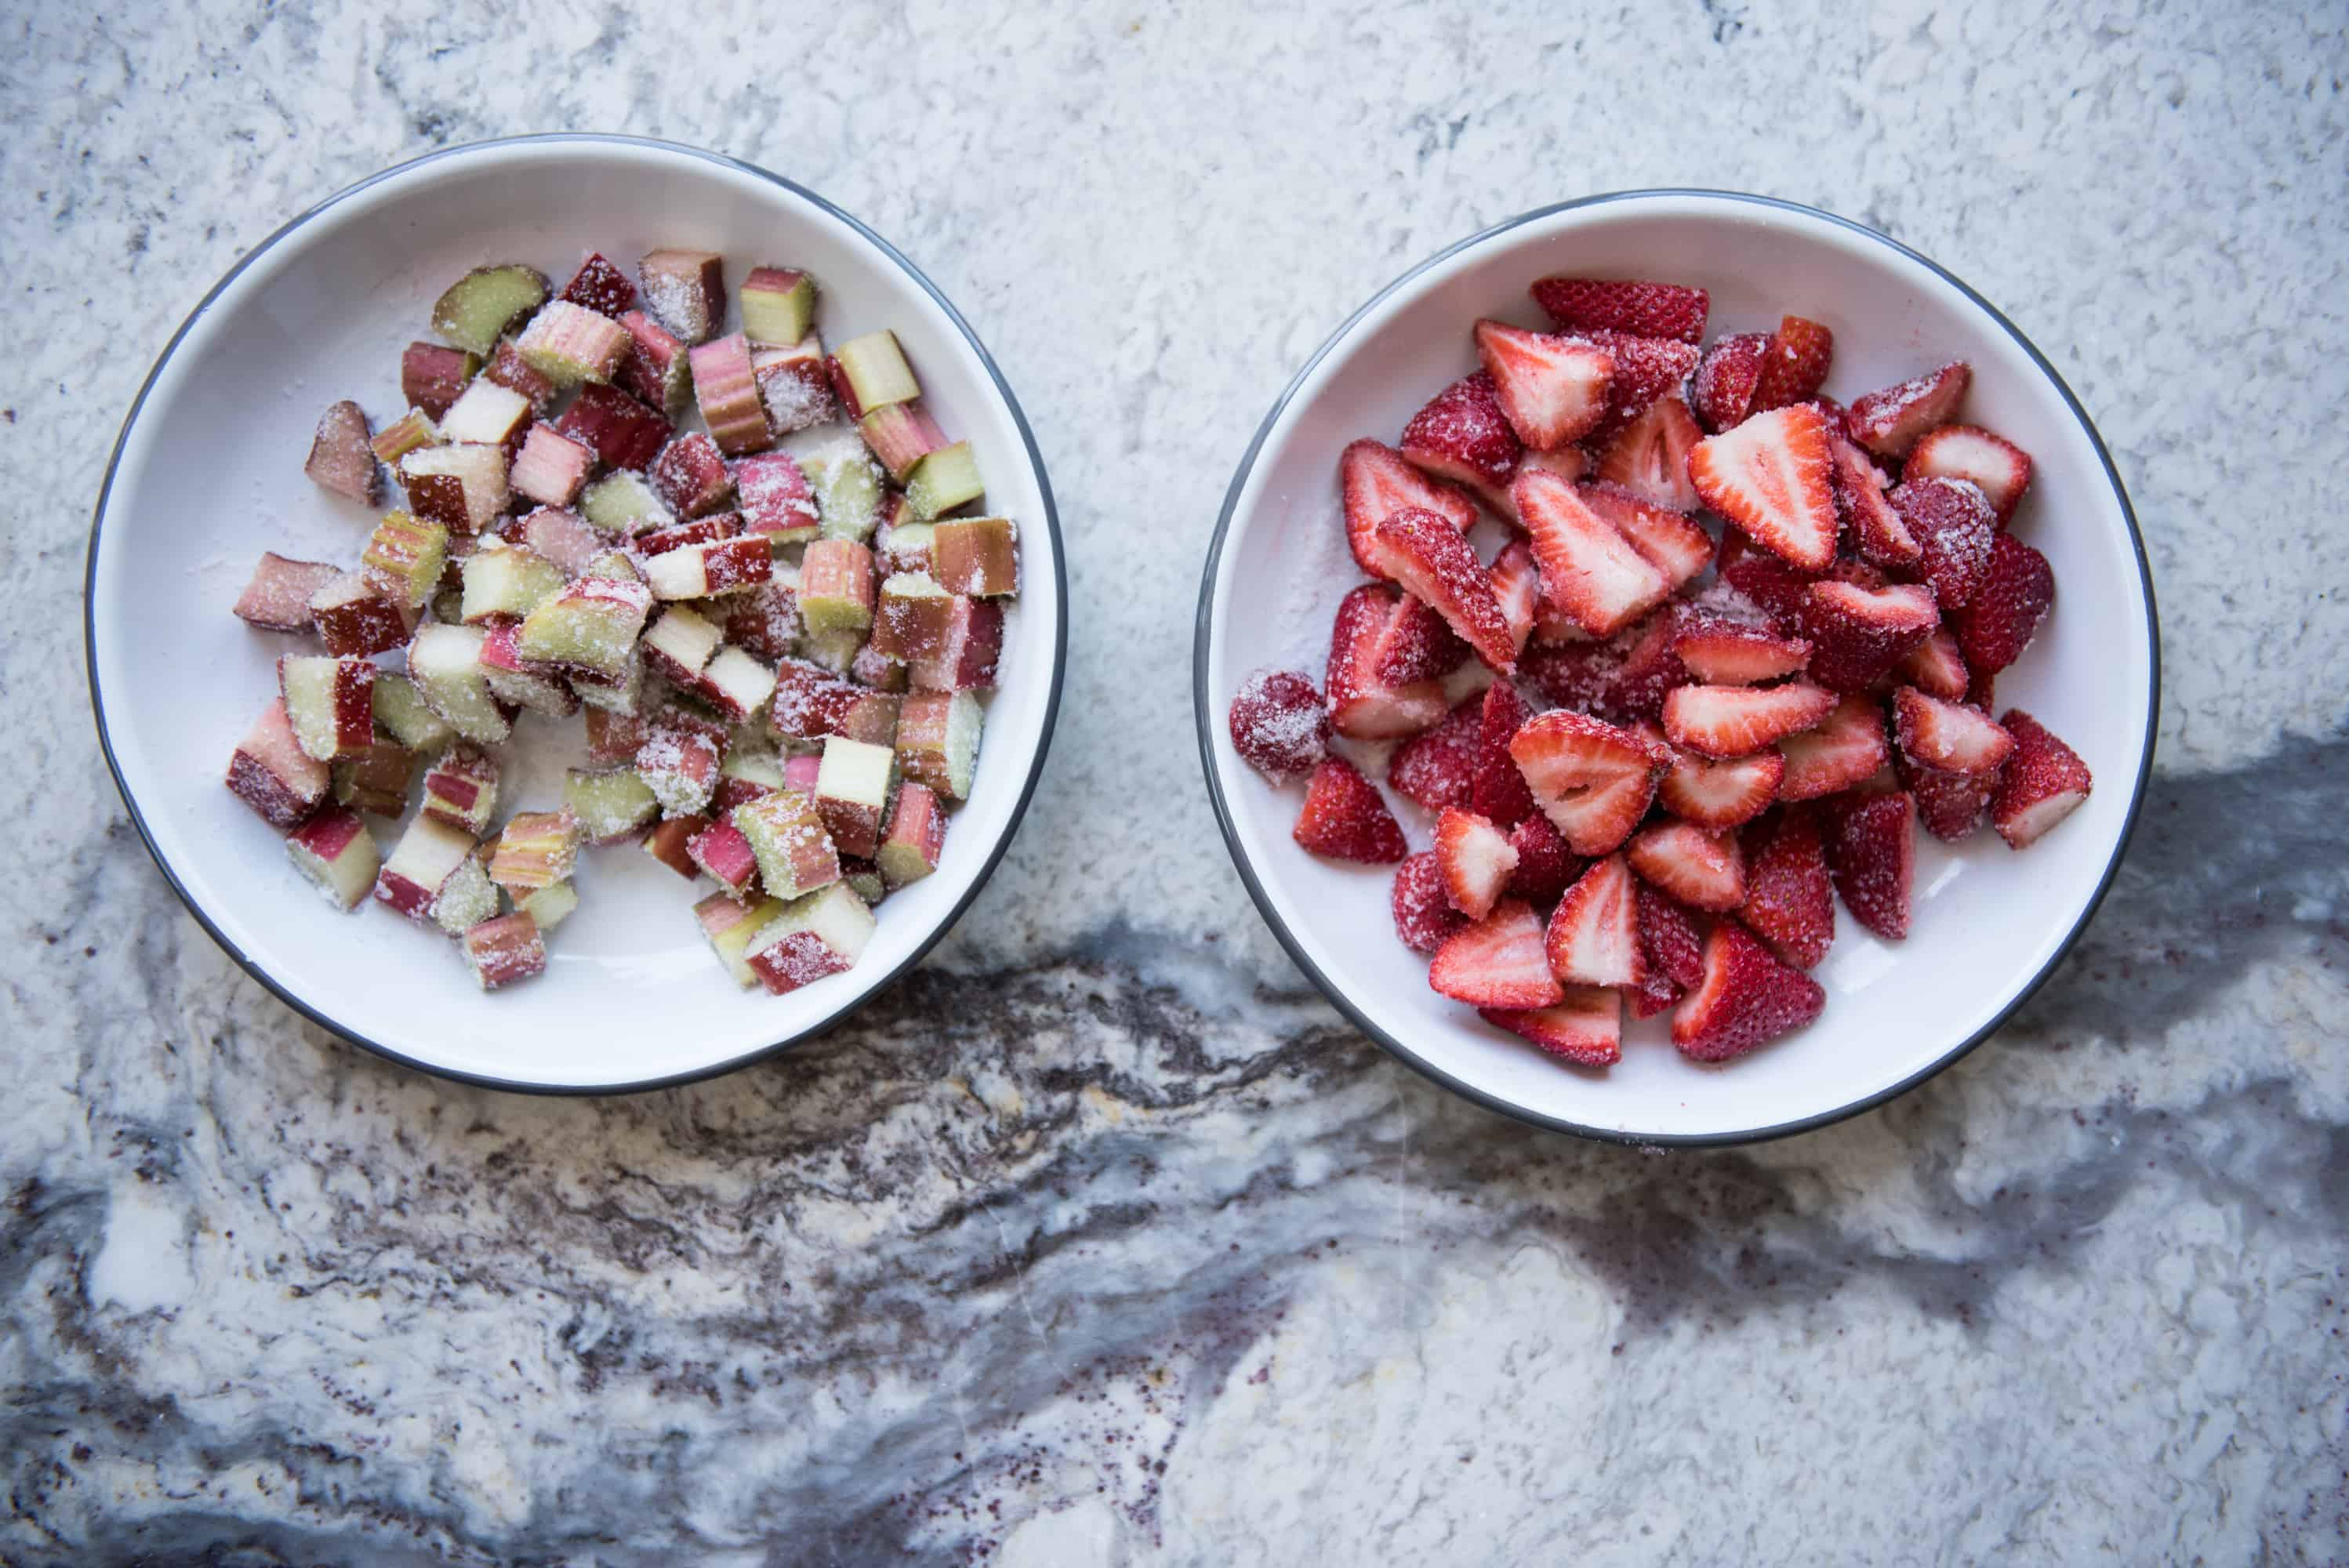 overhead of two white bowls. The bowl on the left contains chopped rhubarb and sugar and the bowl on the right contains chopped strawberries and sugar